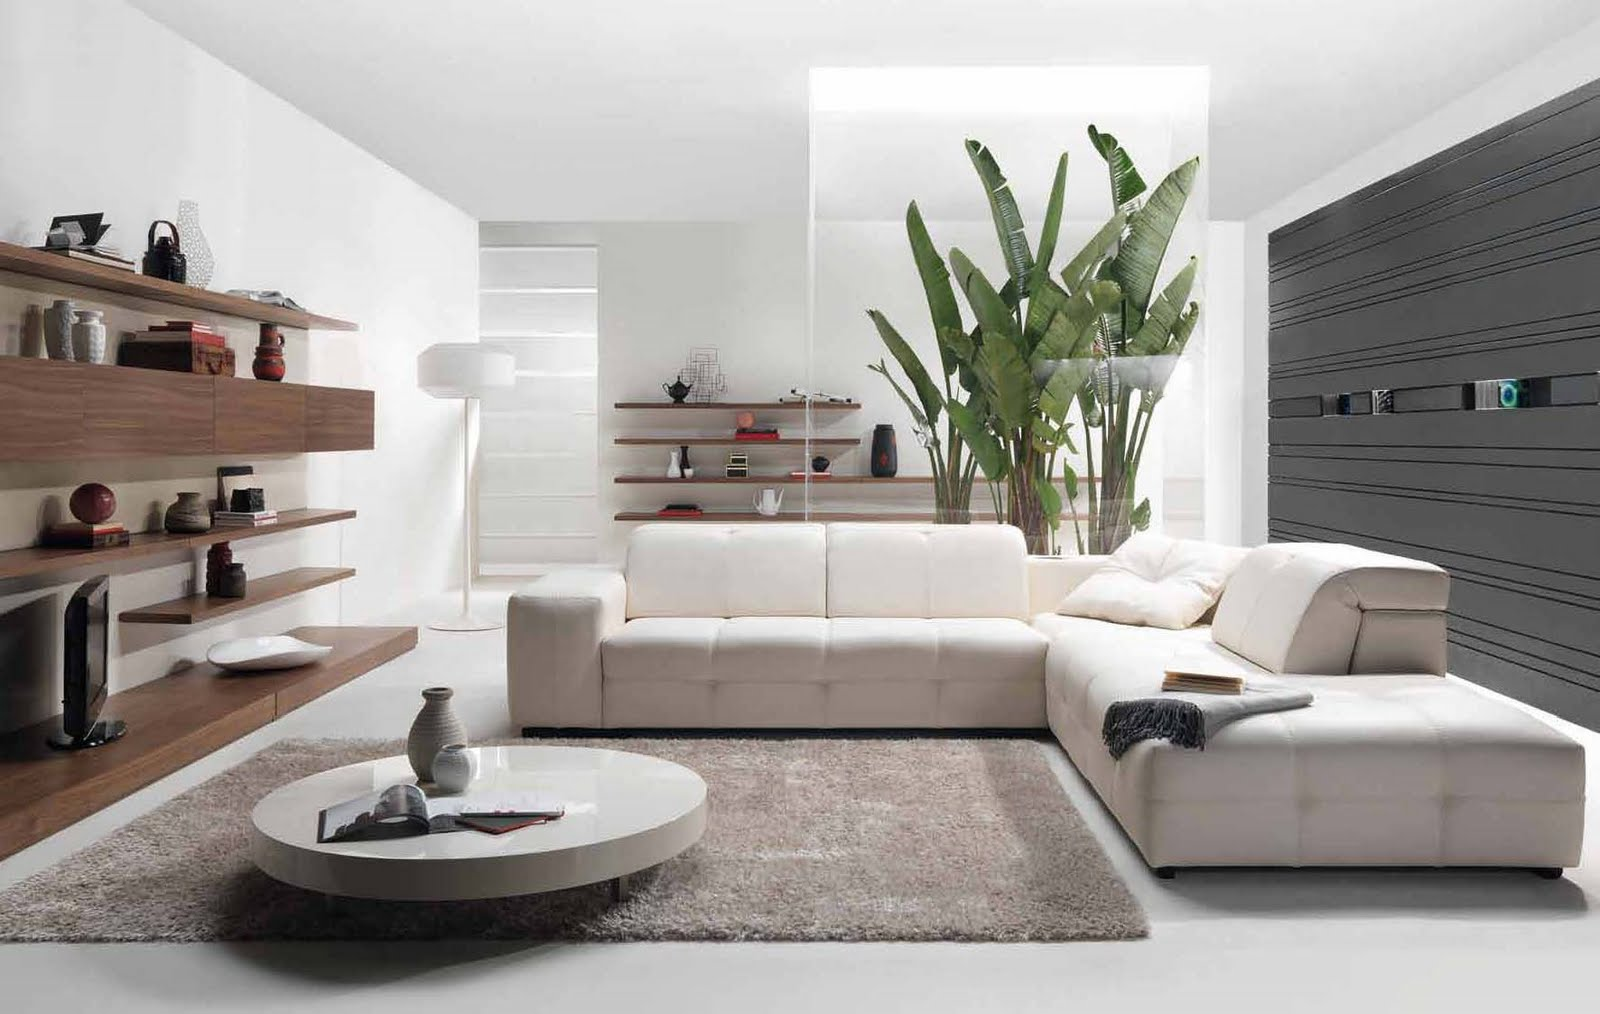 Future House Design Modern Living Room Interior Design  : LivingRoomInteriorDesignStyles from futurehouse-now.blogspot.com size 1600 x 1014 jpeg 151kB